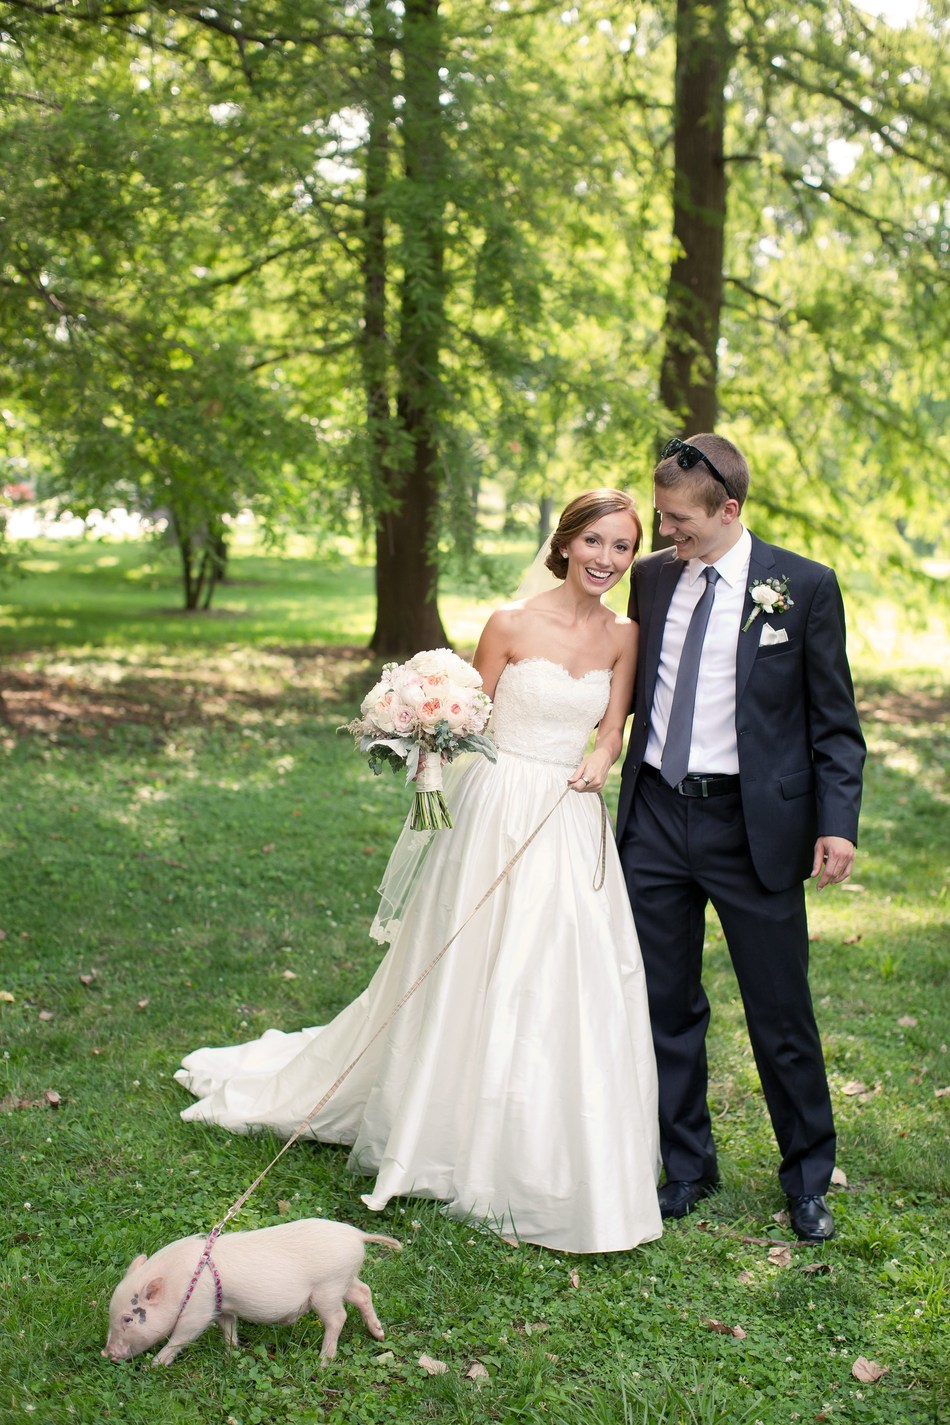 From bunnies and donkeys to llamas and pigs, couples having rustic barn weddings are incorporating farm animals into the wedding day. Photo courtesy of K.Corea Photography and The Knot.